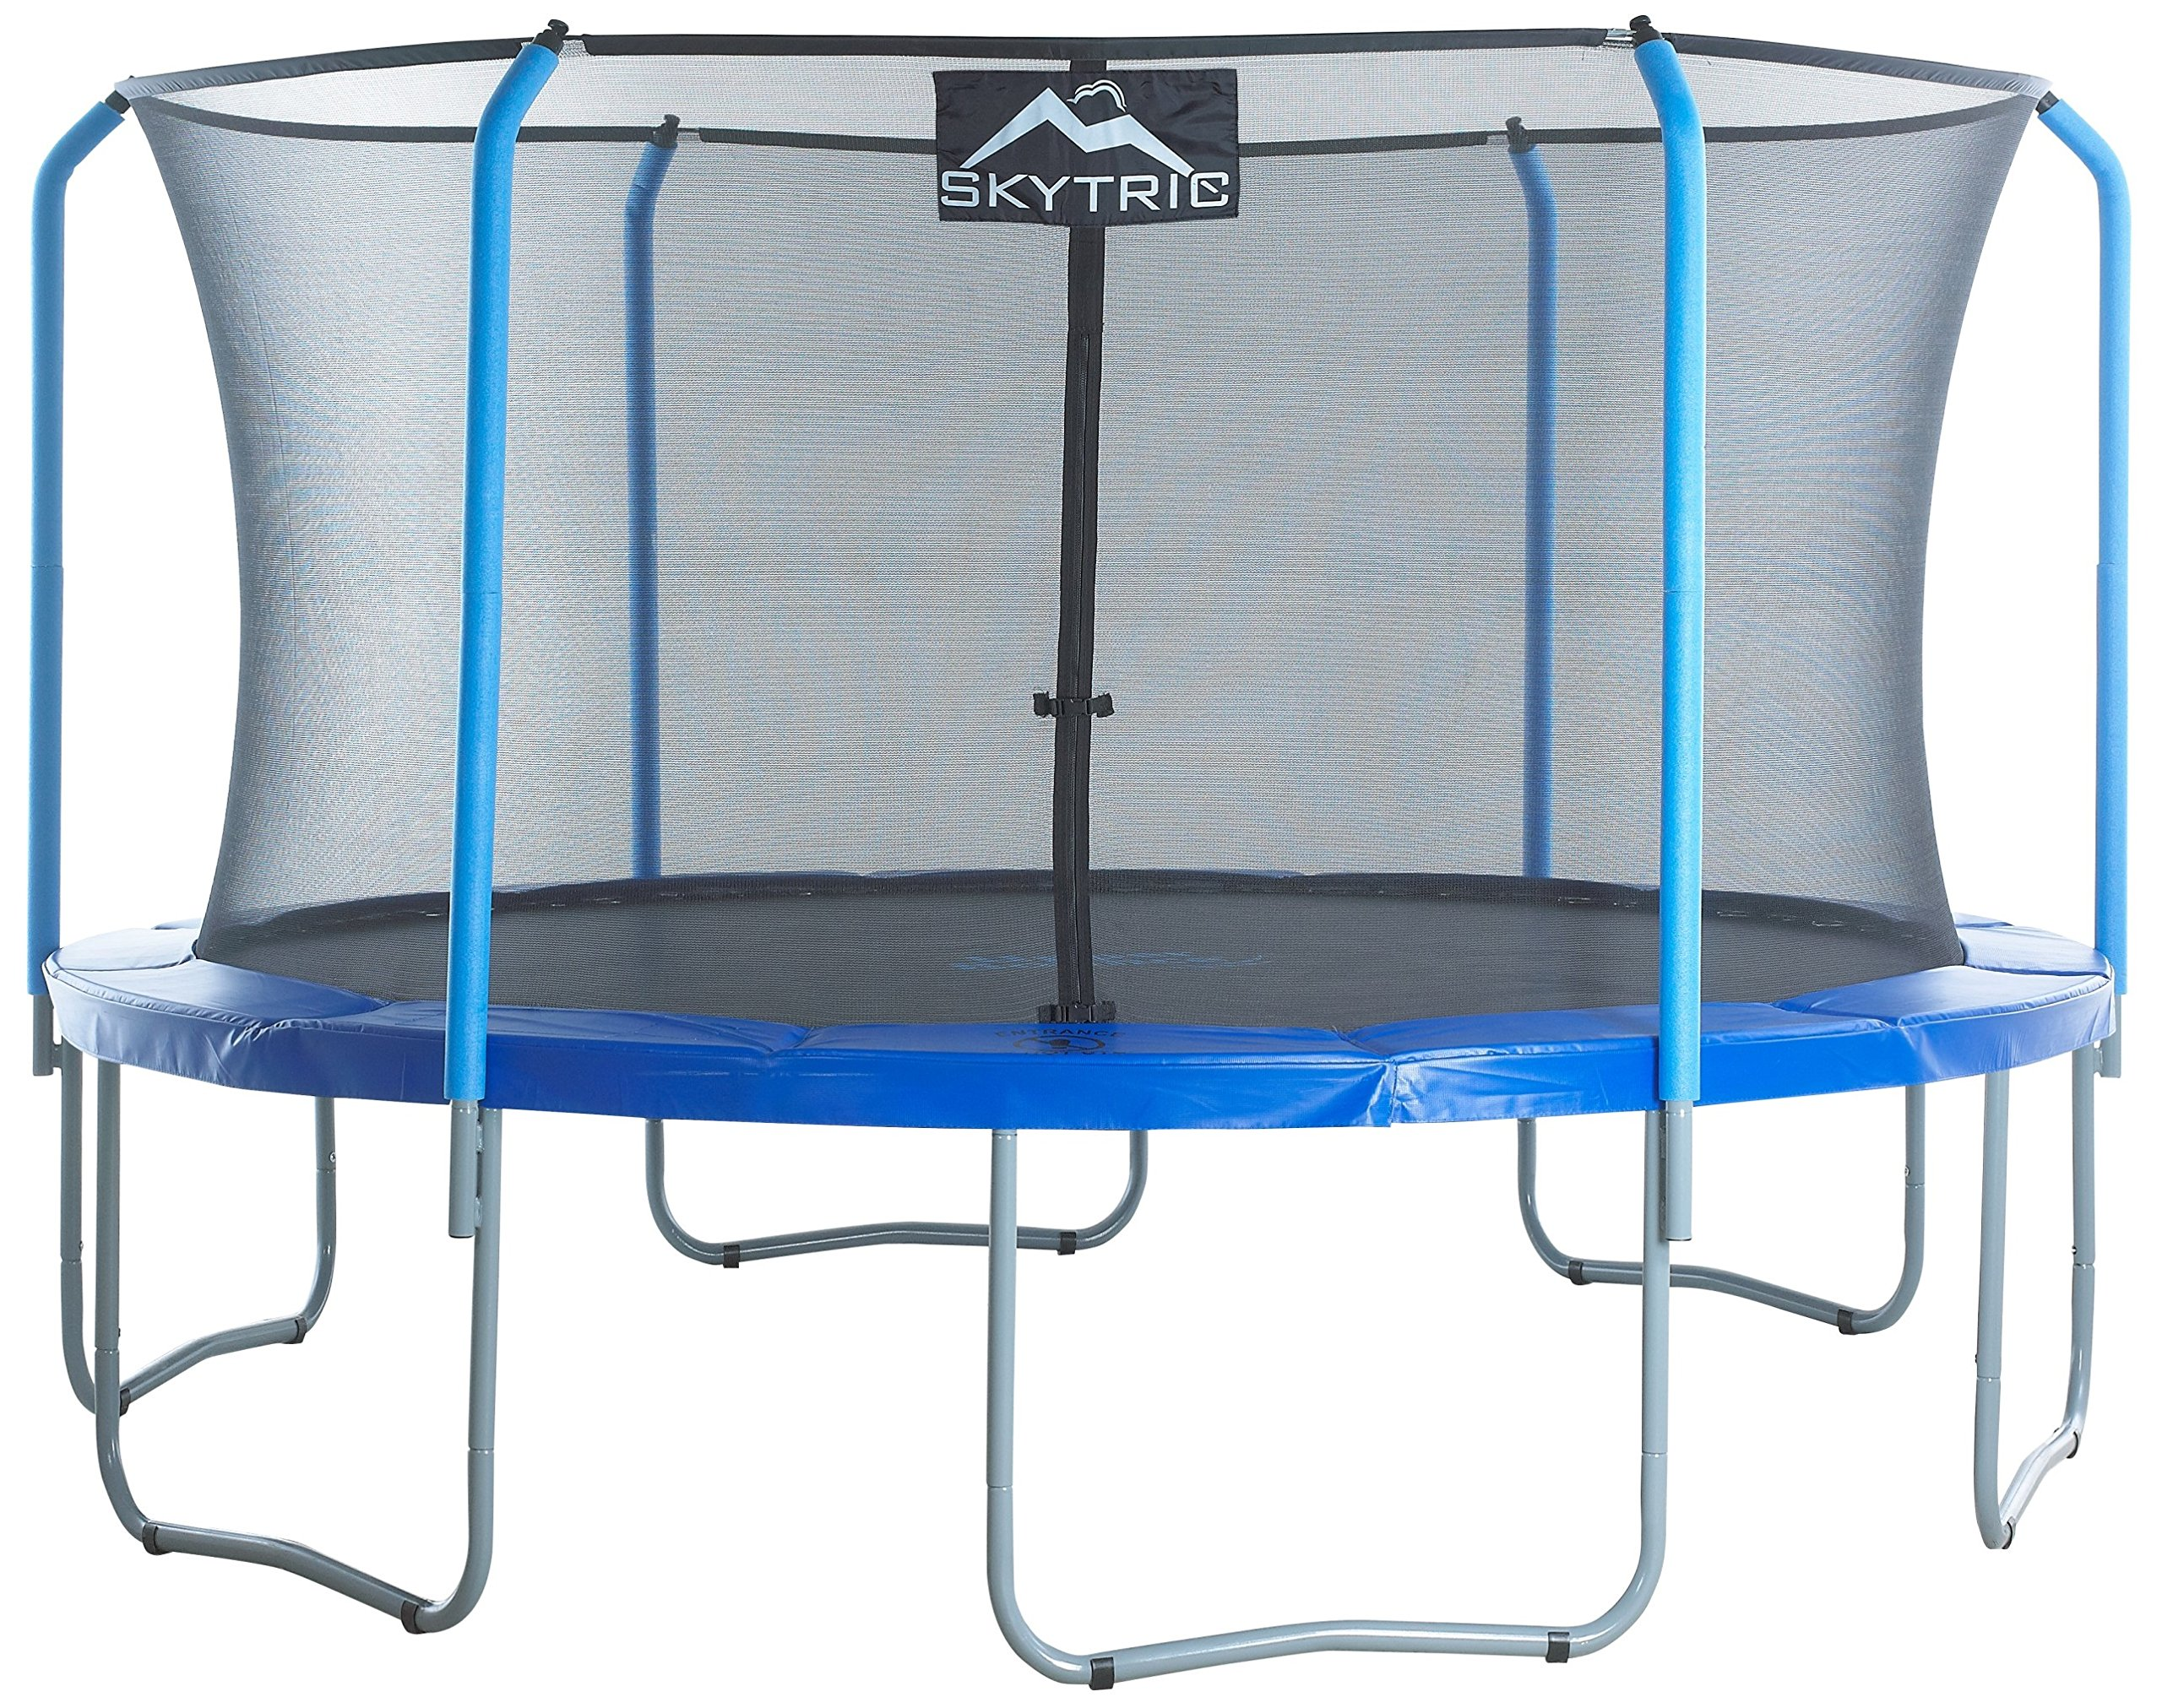 SKYTRIC Trampoline with Top Ring Enclosure System Equipped with The Easy Assemble Feature, 15-Feet